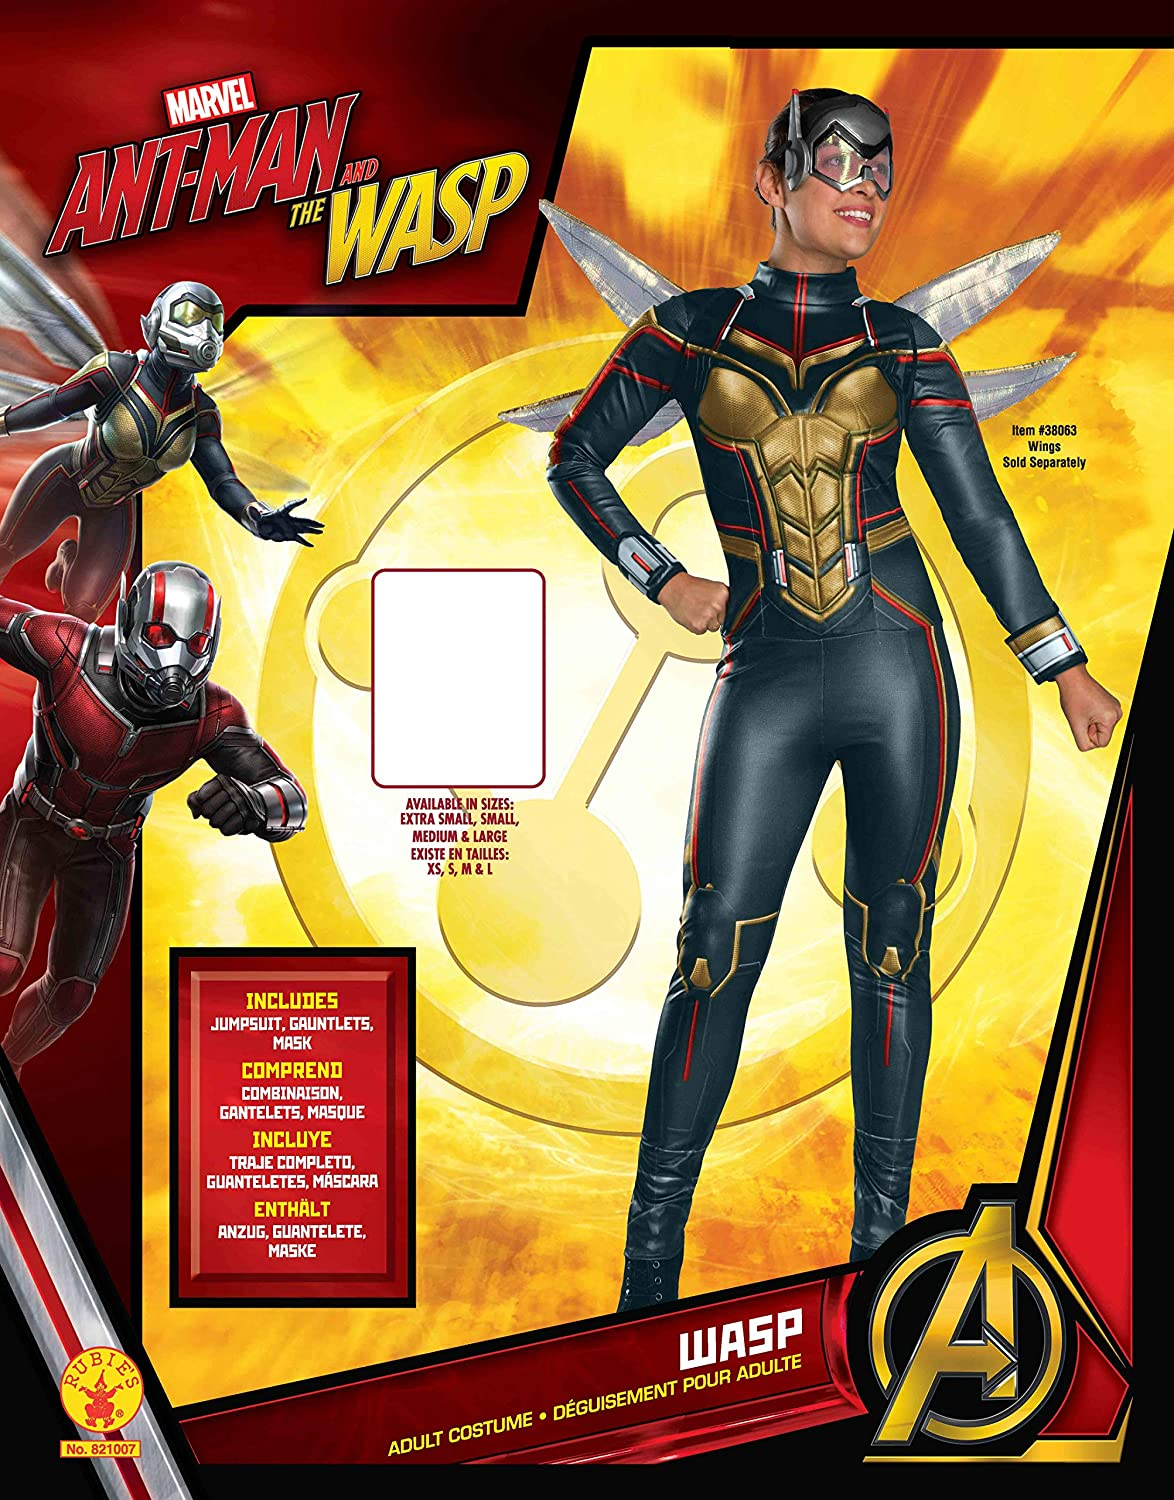 Ant-man - Disfraz Wasp Movie AD (Rubies 821007-S): Amazon.es: Productos para mascotas